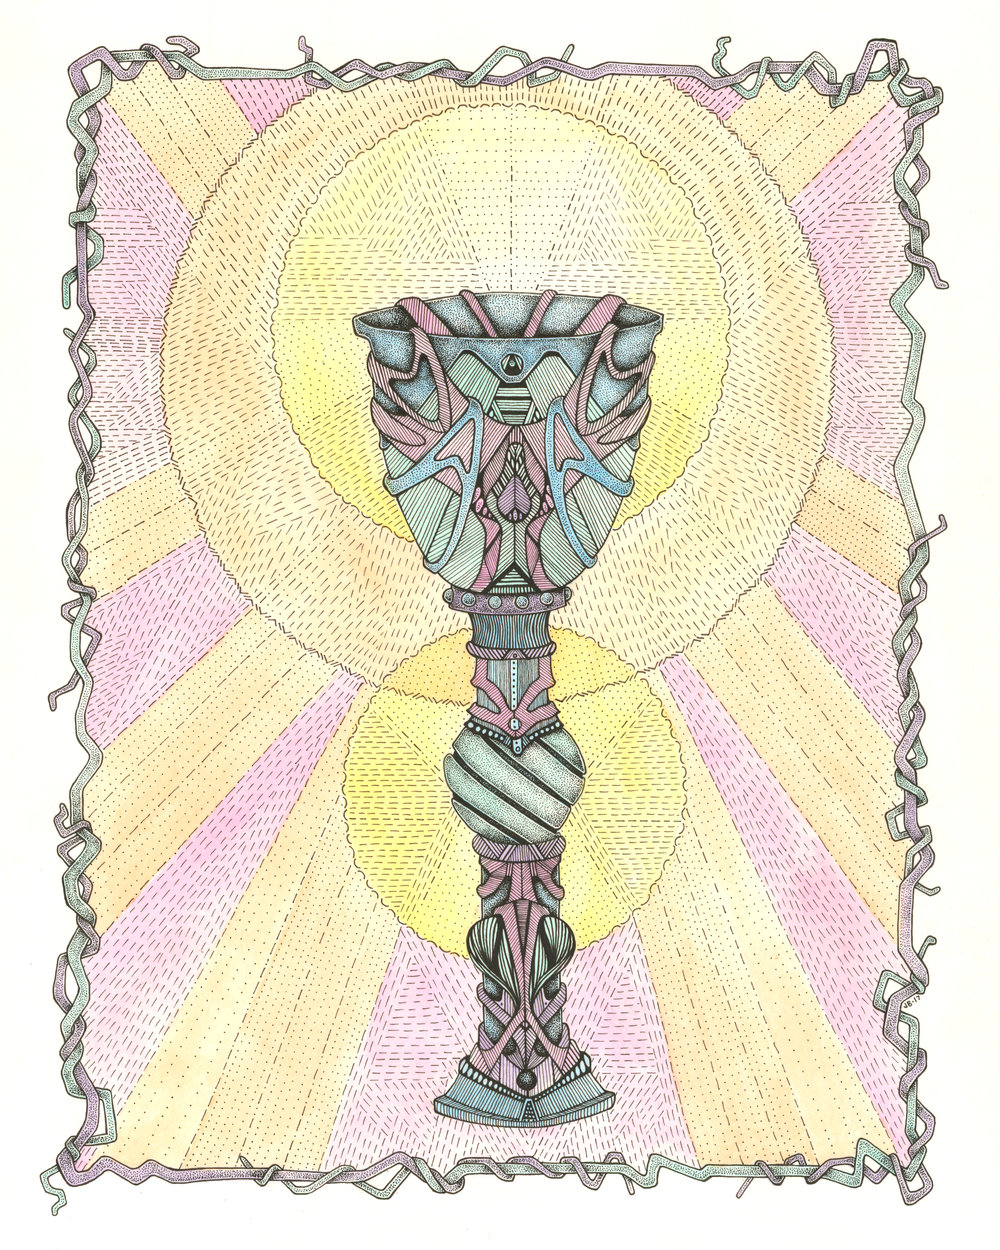 Justine Briggs – Chalice – Ink & Watercolor on Paper – 25 x 21 inches - $350